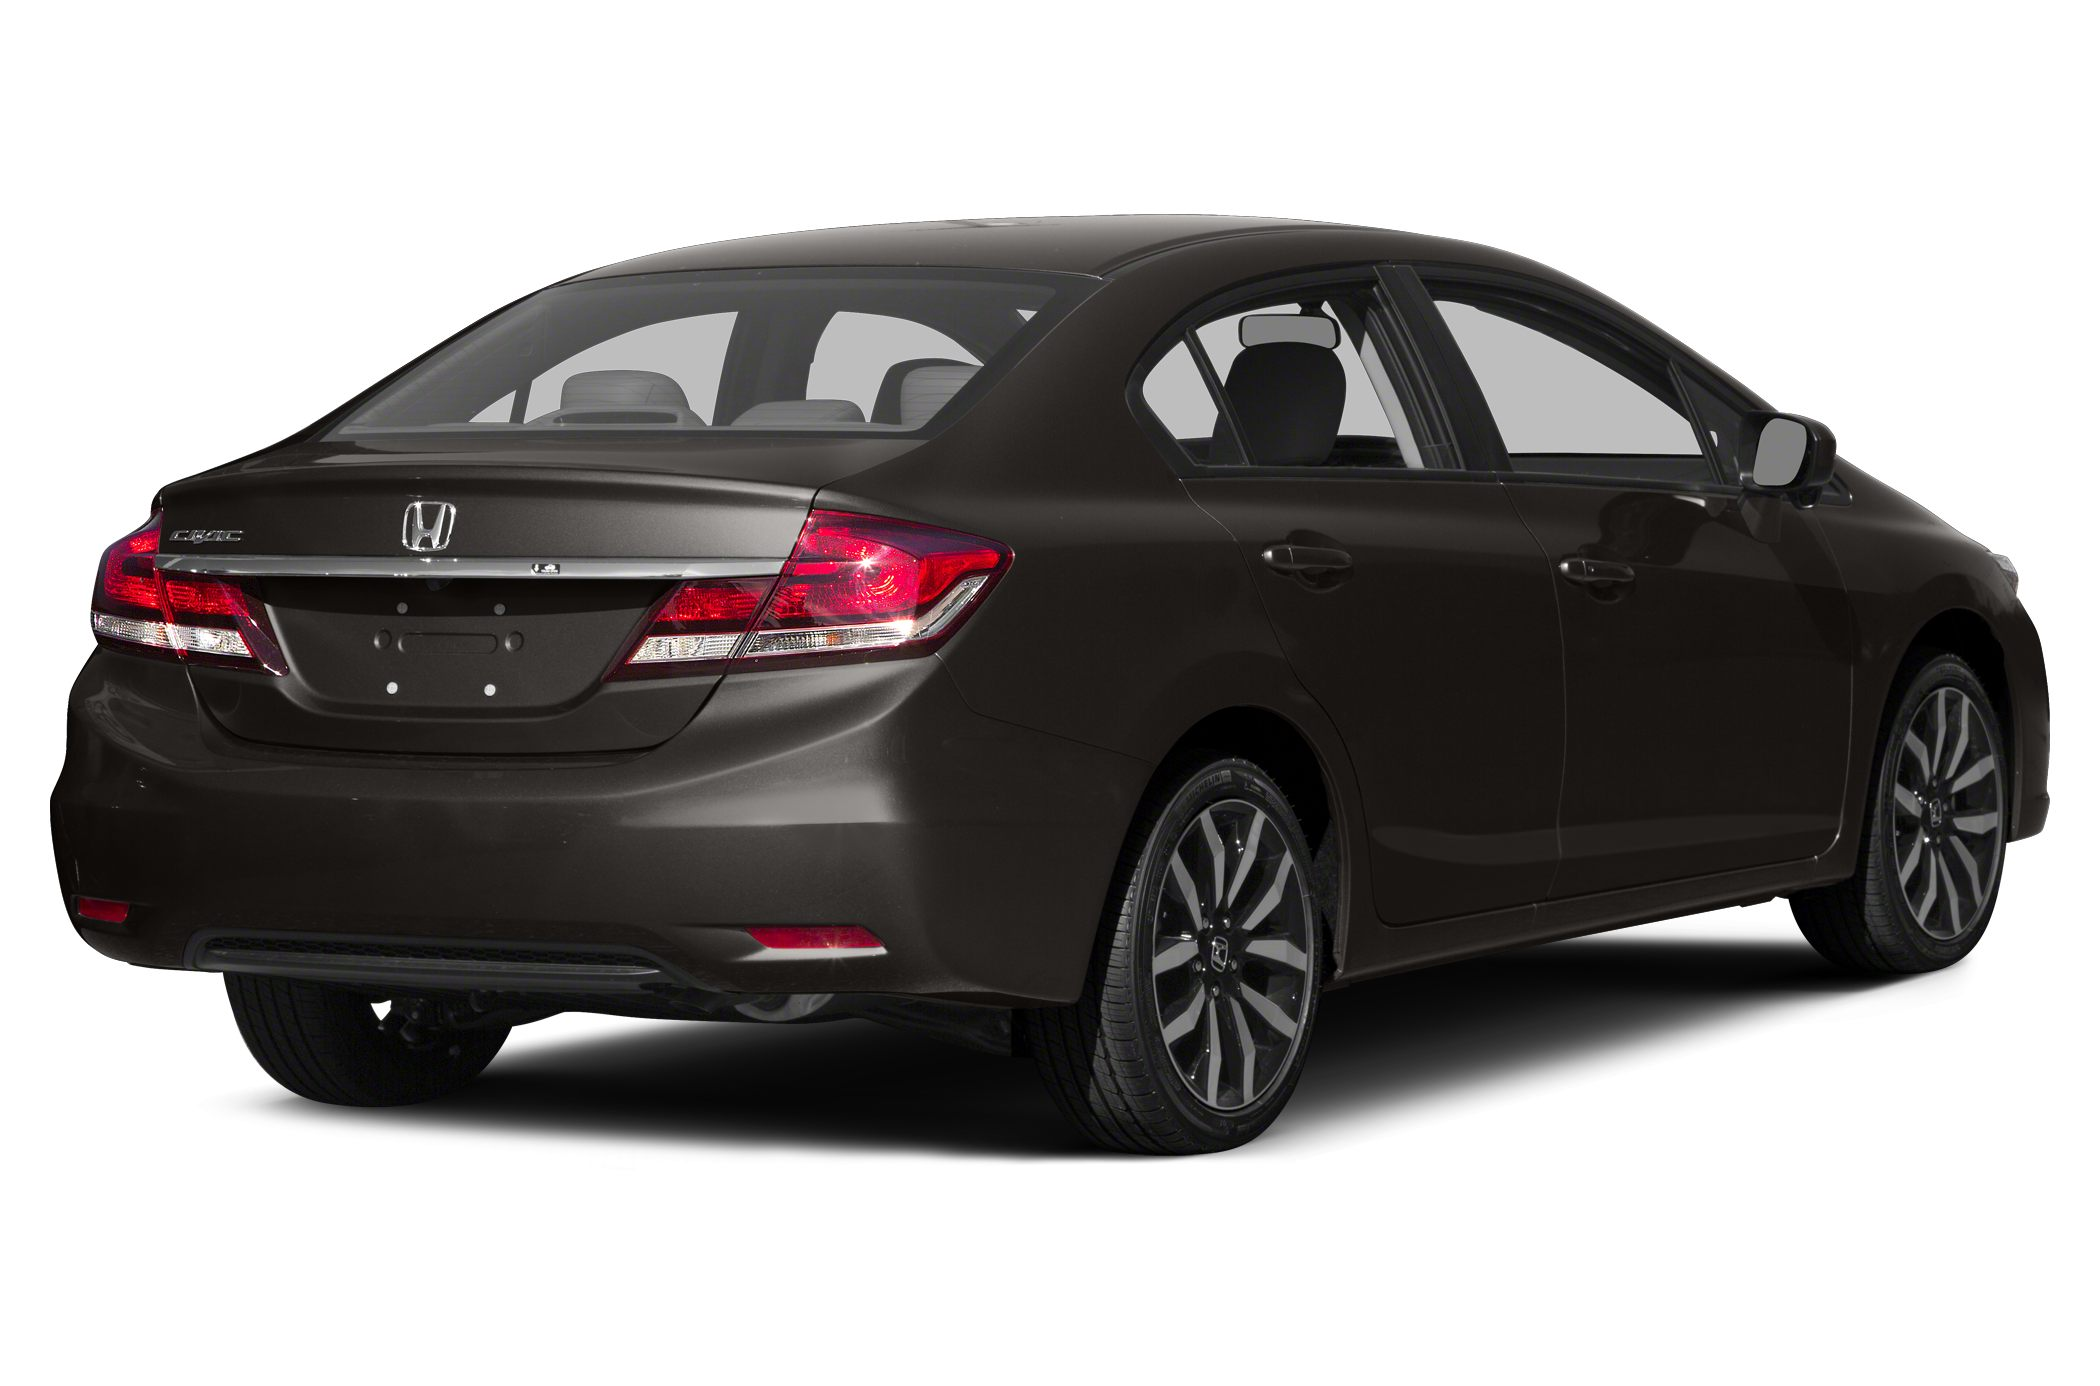 2015 Honda Civic EX-L ONE PRICE STOP NO HASSLE NO HAGGLE CAR BUYING EXPERIENCE Miles